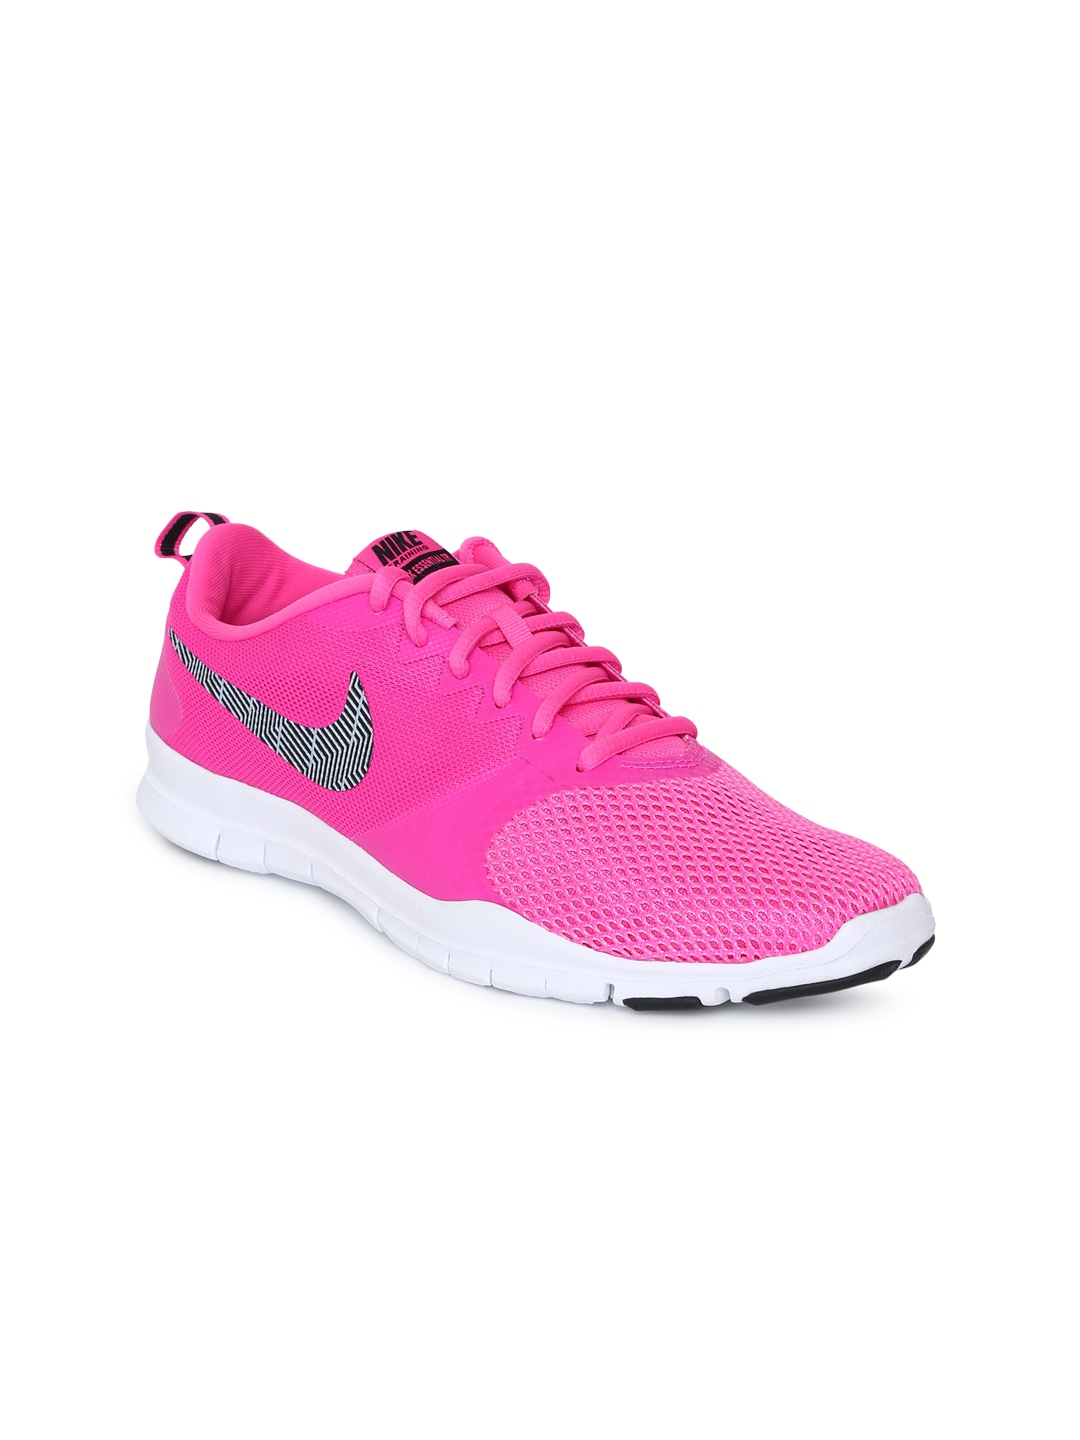 e5316ed9a7b Nike Shoes - Buy Nike Shoes for Men